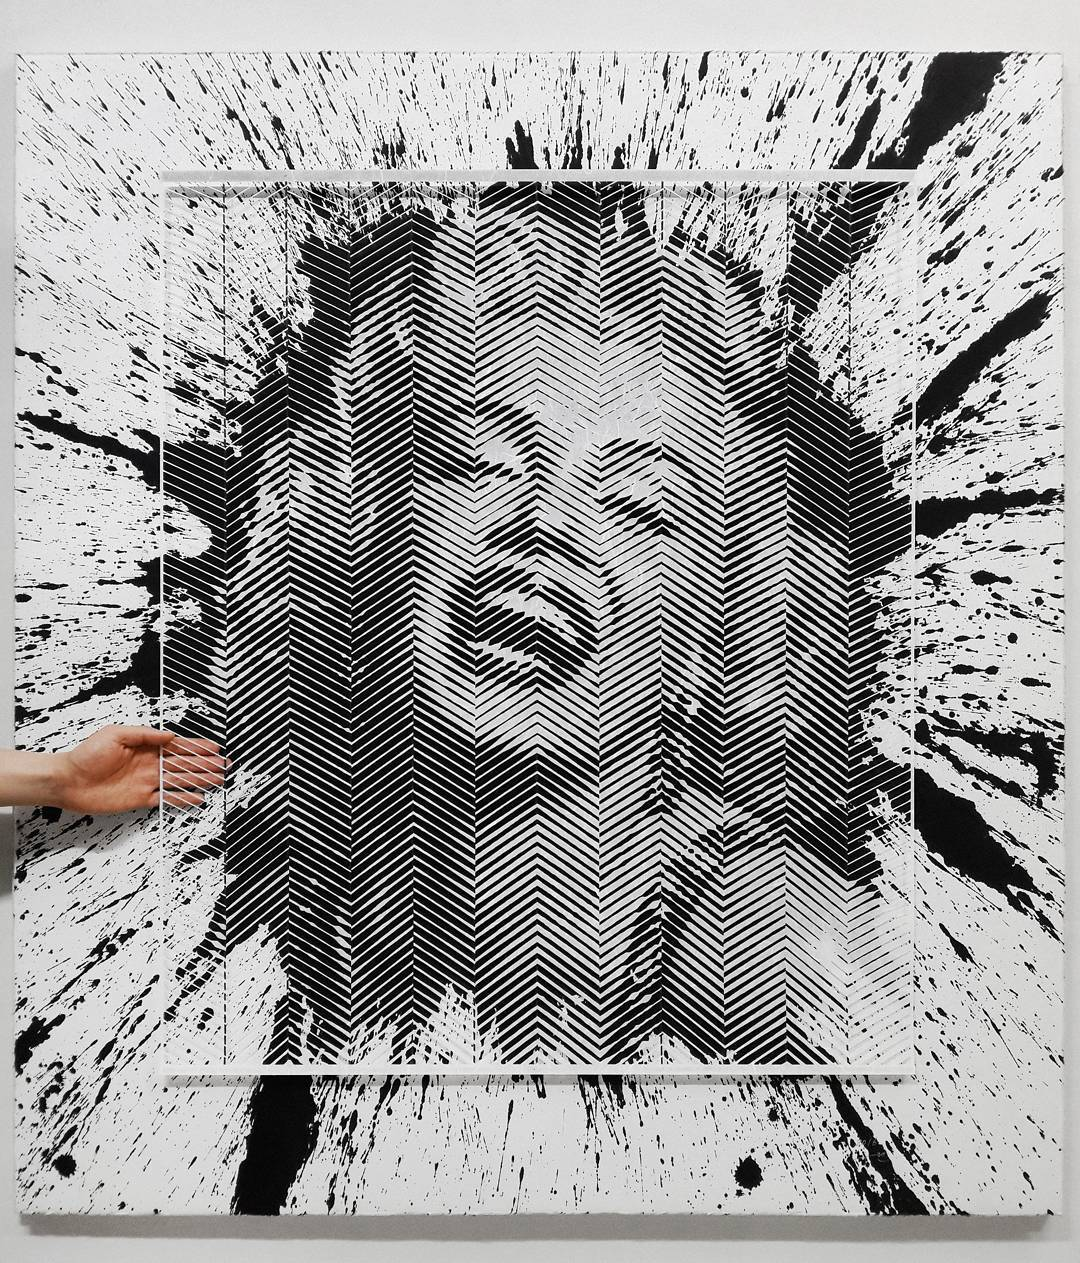 Artist Hand-Carves Complex Photorealistic Portraits Out of Paper - Marilyn Monroe